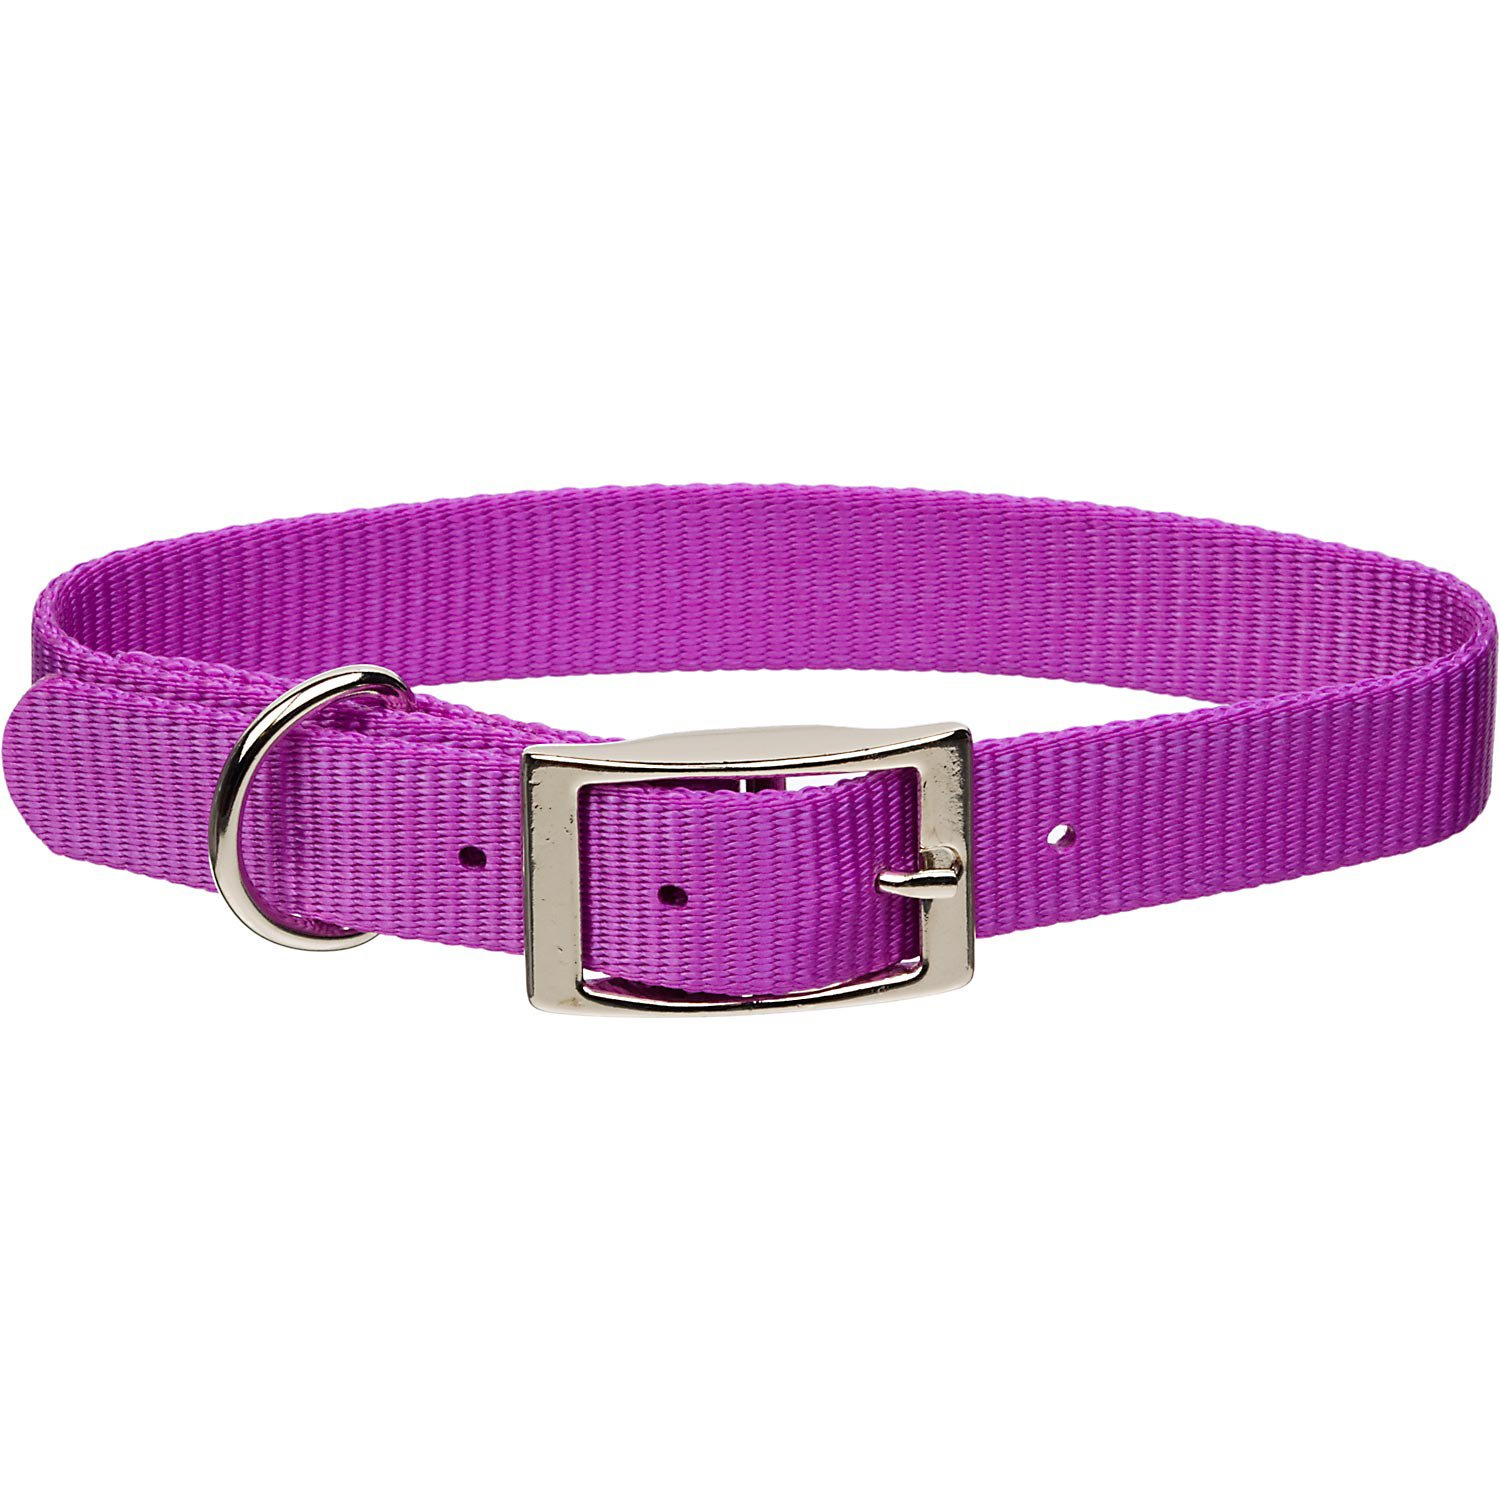 Nylon Dog Collar With Metal Buckle